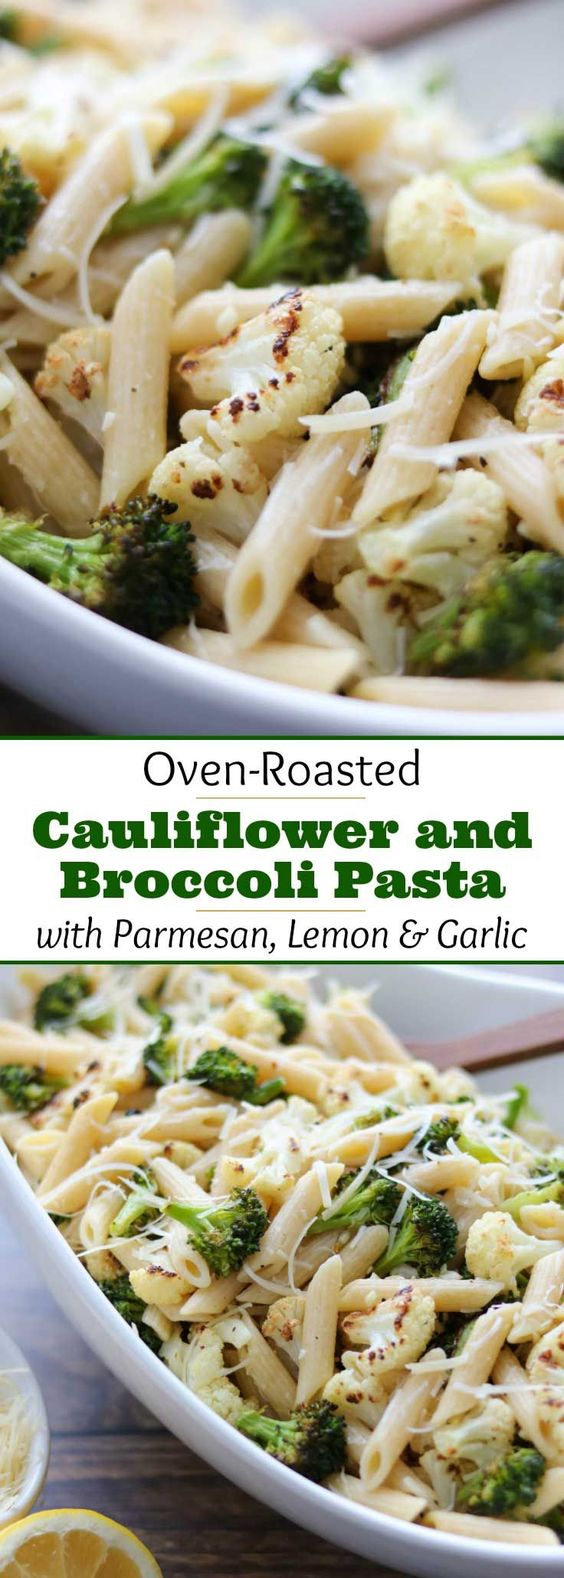 Roasted Broccoli And Cauliflower Pasta with Parmesan, Lemon And Garlic #roasted #broccoli #cauliflower #pasta #pastarecipes #parmesan #lemon #garlic #vegetarian #vegetarianrecipes #veggies #veganrecipes